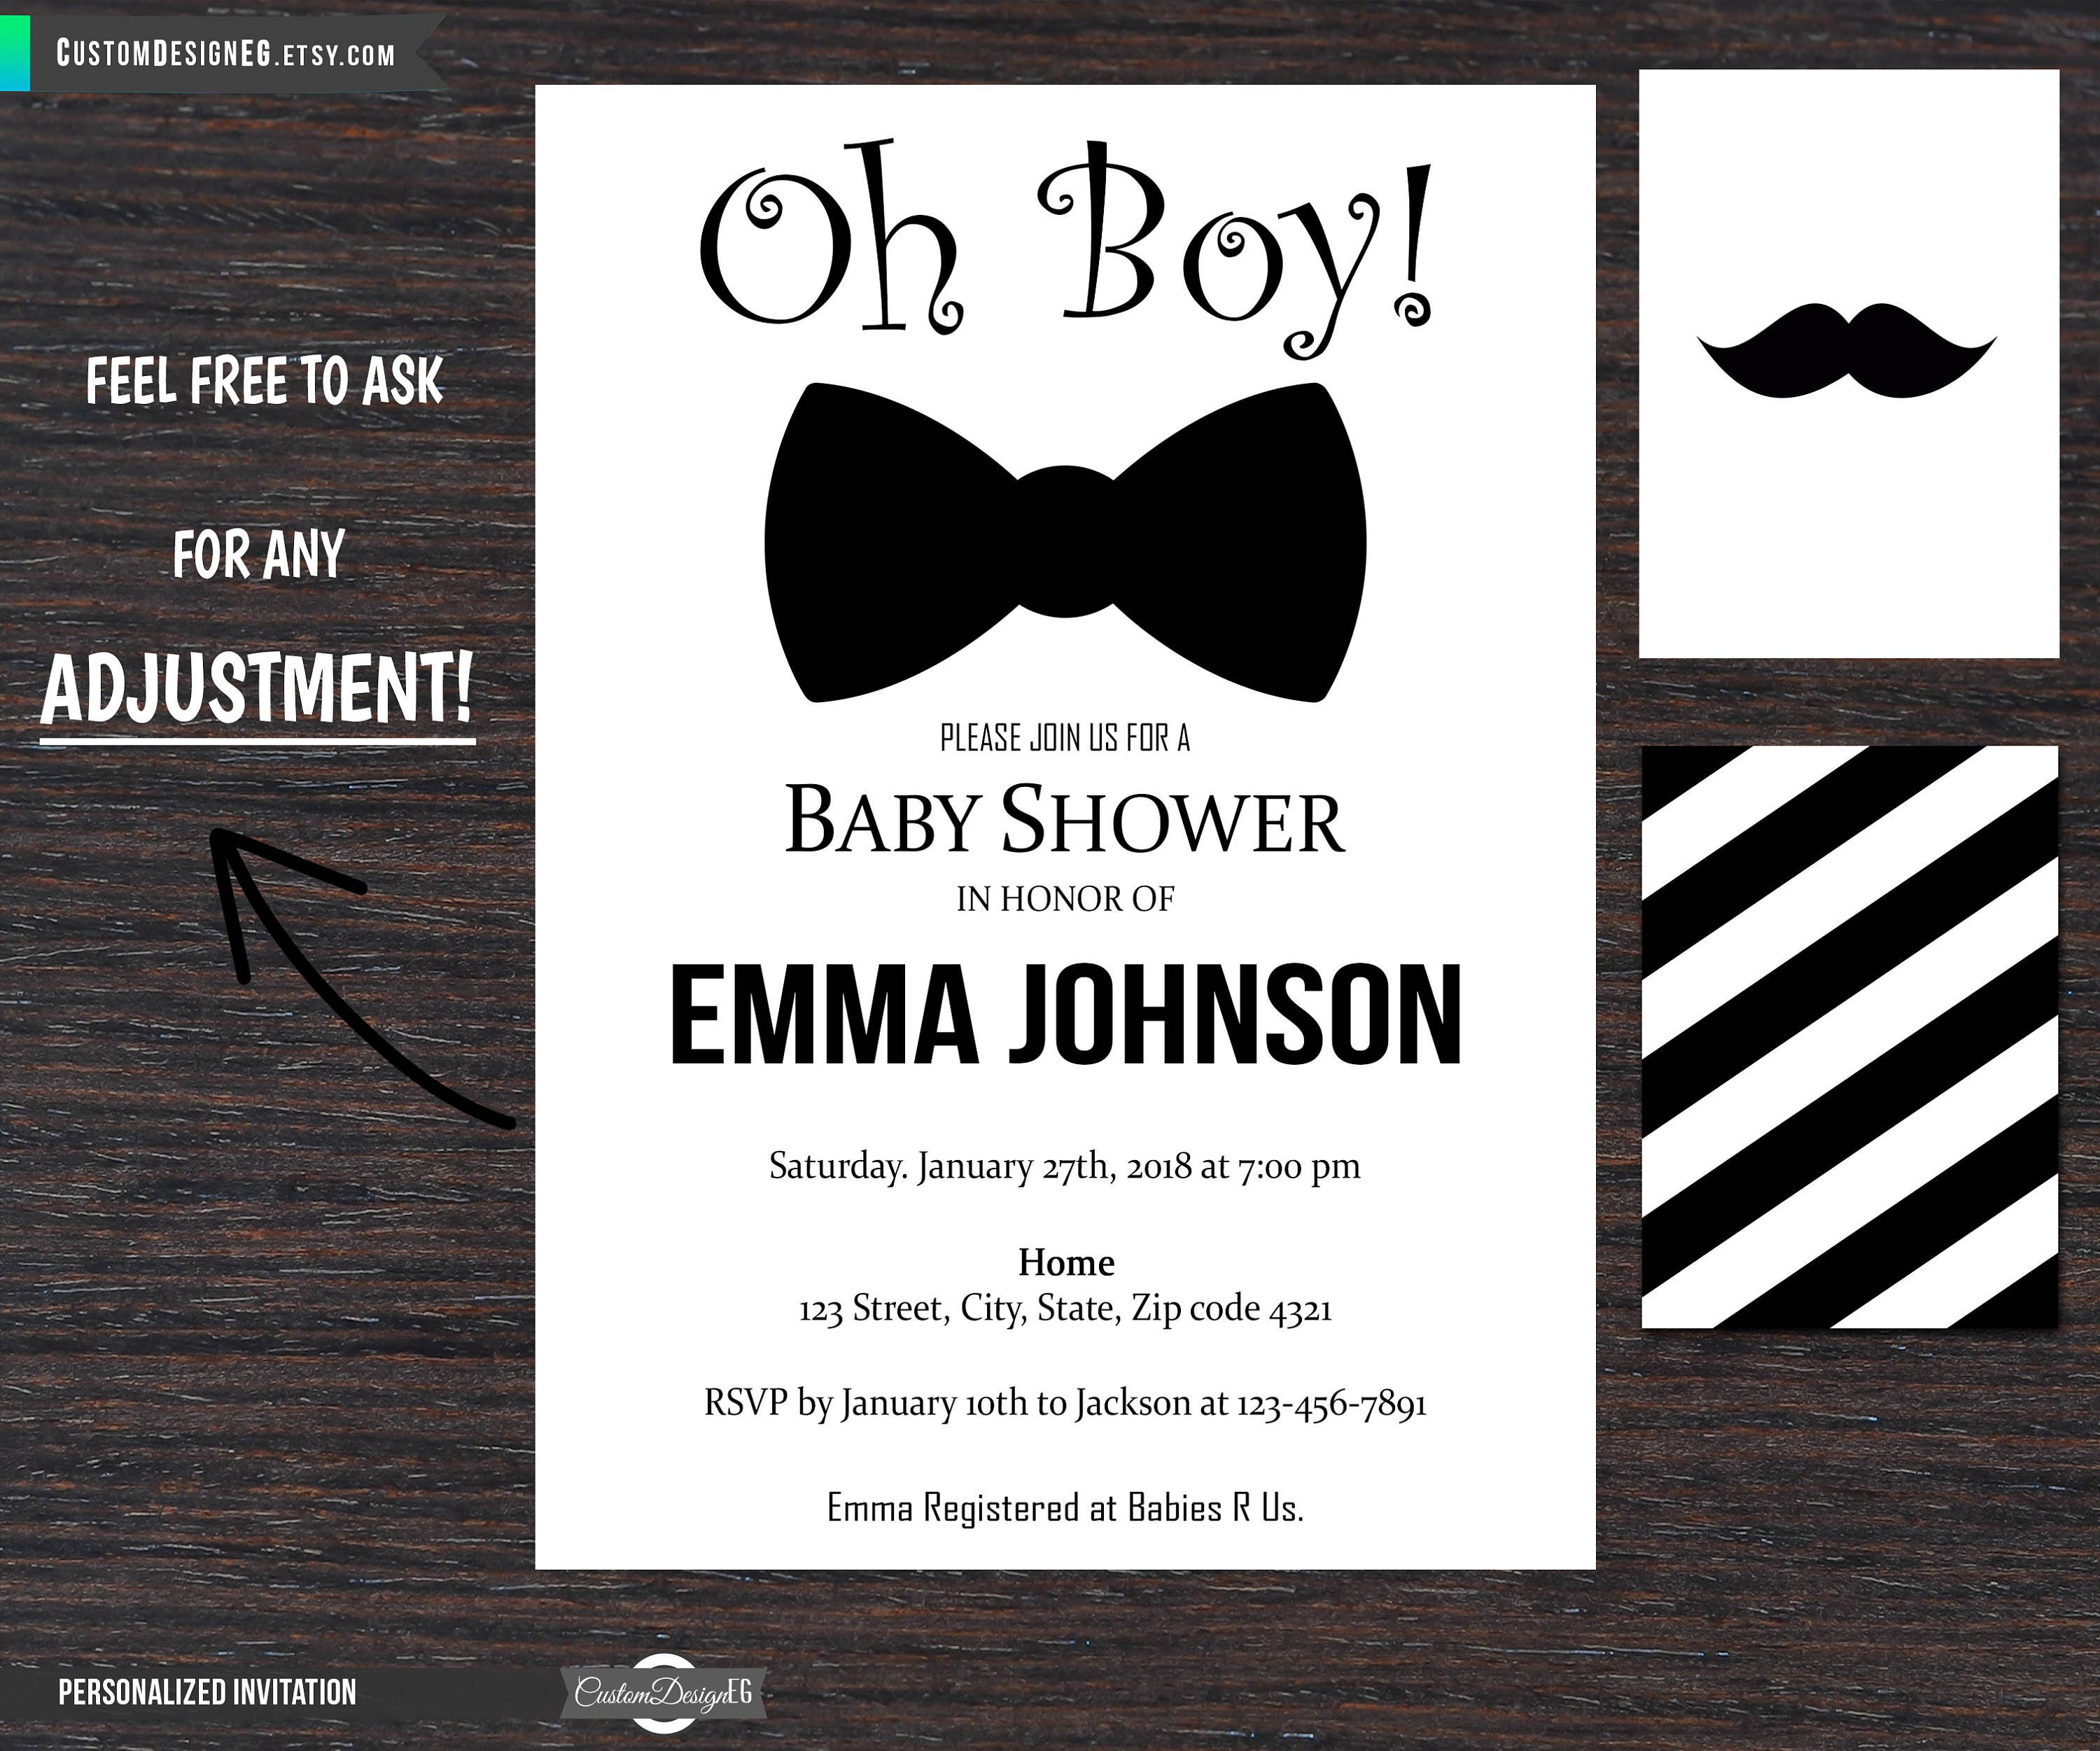 Bow tie baby shower invitations Little Man baby shower   Etsy